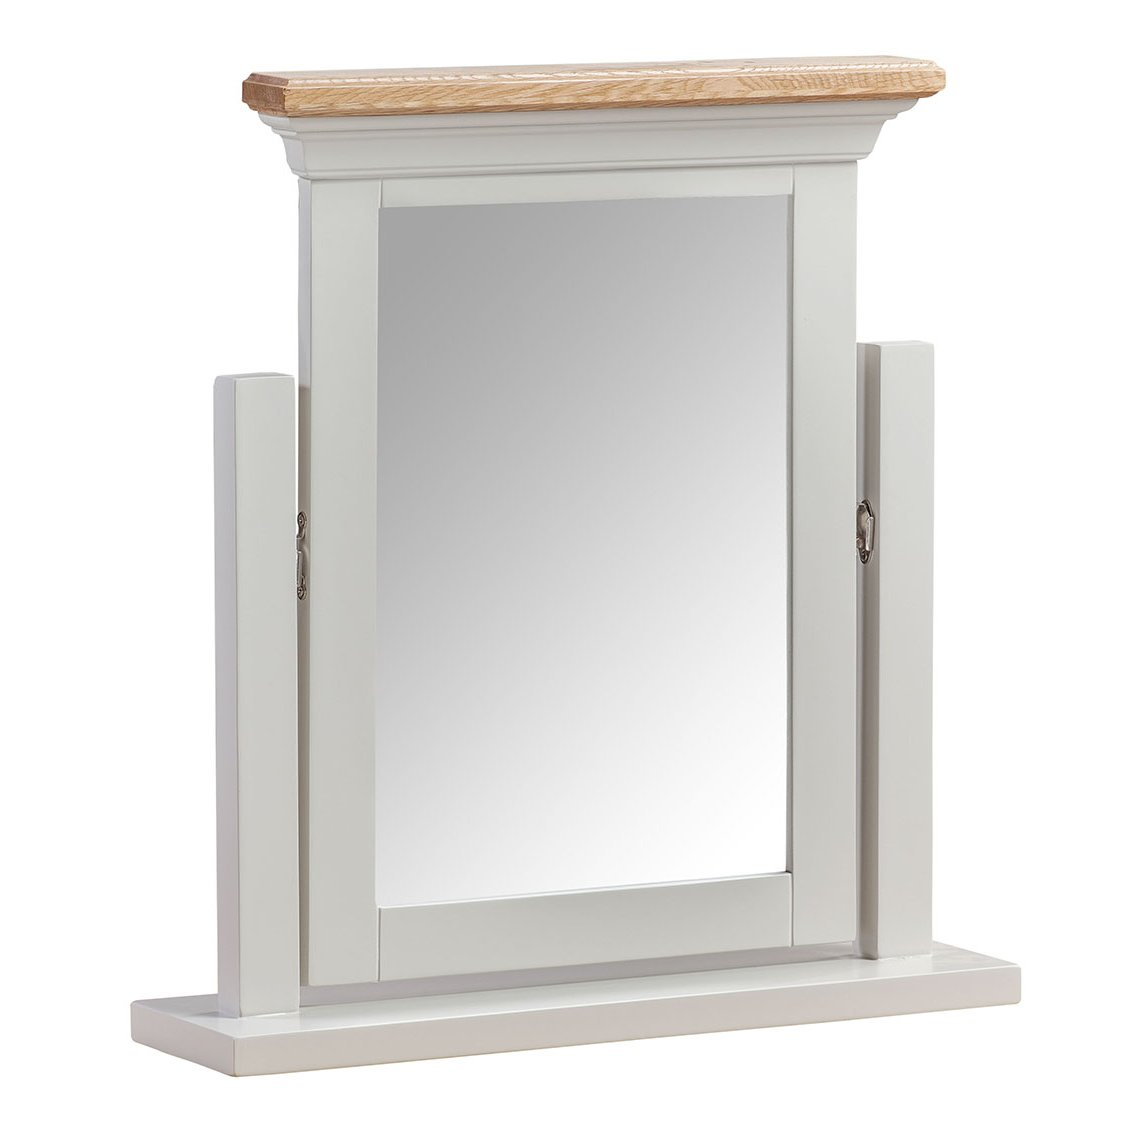 image-Cotswold Solid Oak Cream Painted Furniture Vanity Dressing Table Mirror